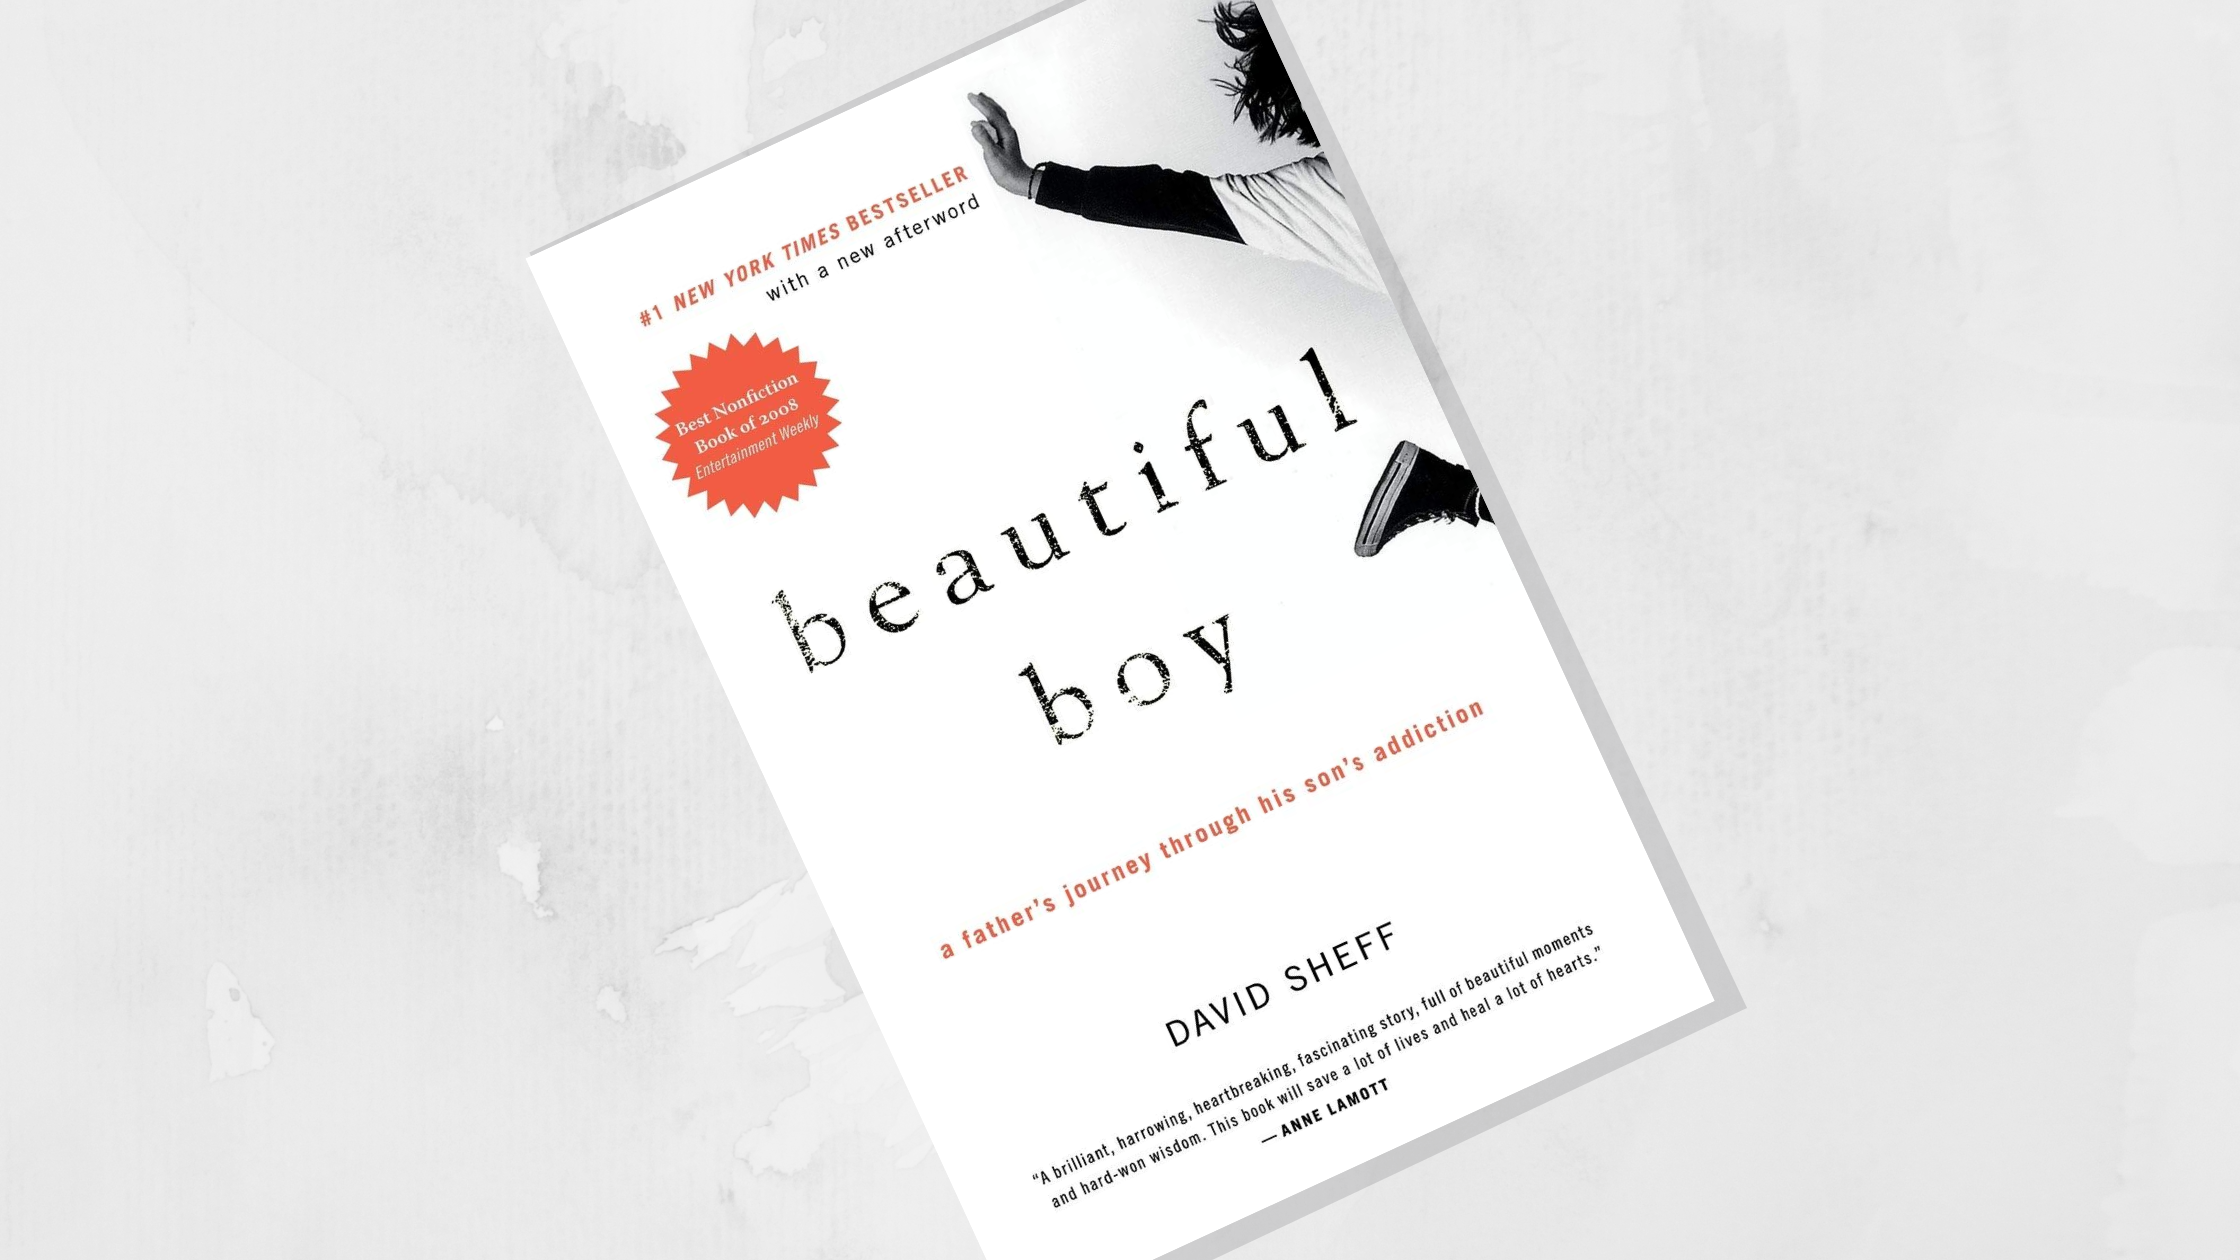 Addiction's Impact on Families Intensified by Pandemic : Interview With Author David Sheff